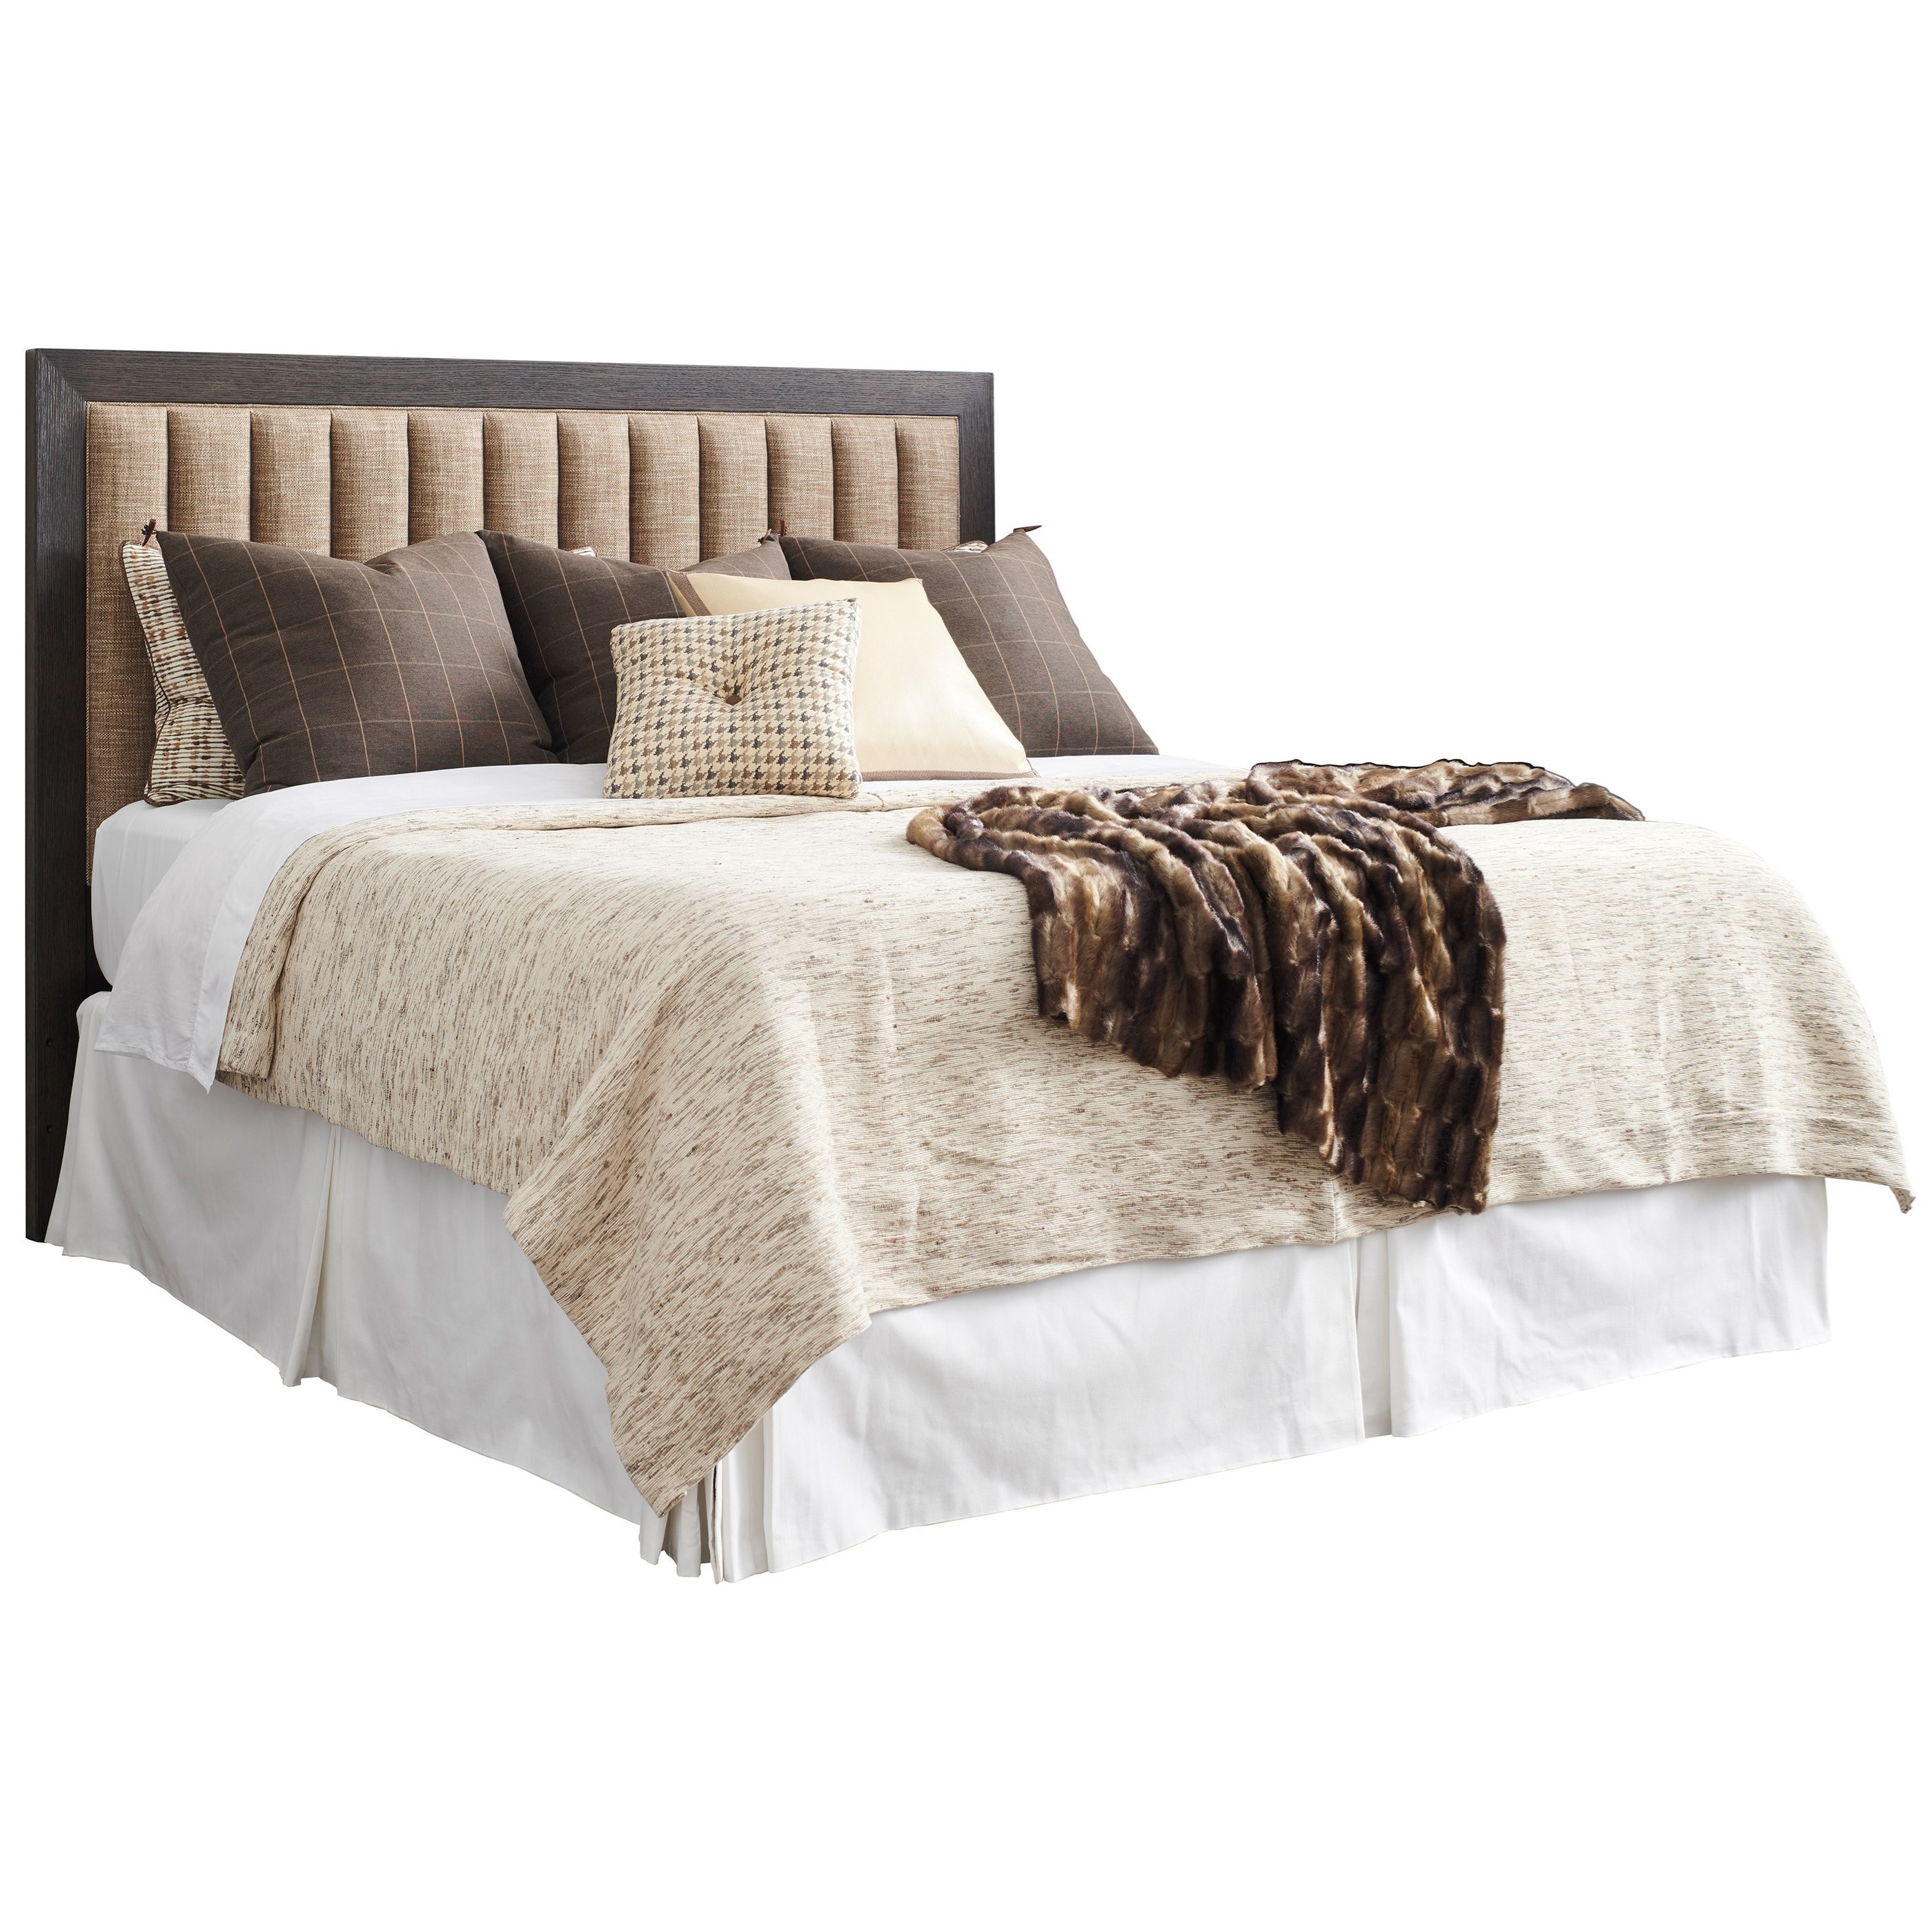 Talisker Queen Upholstered Headboard with Channel Tufting